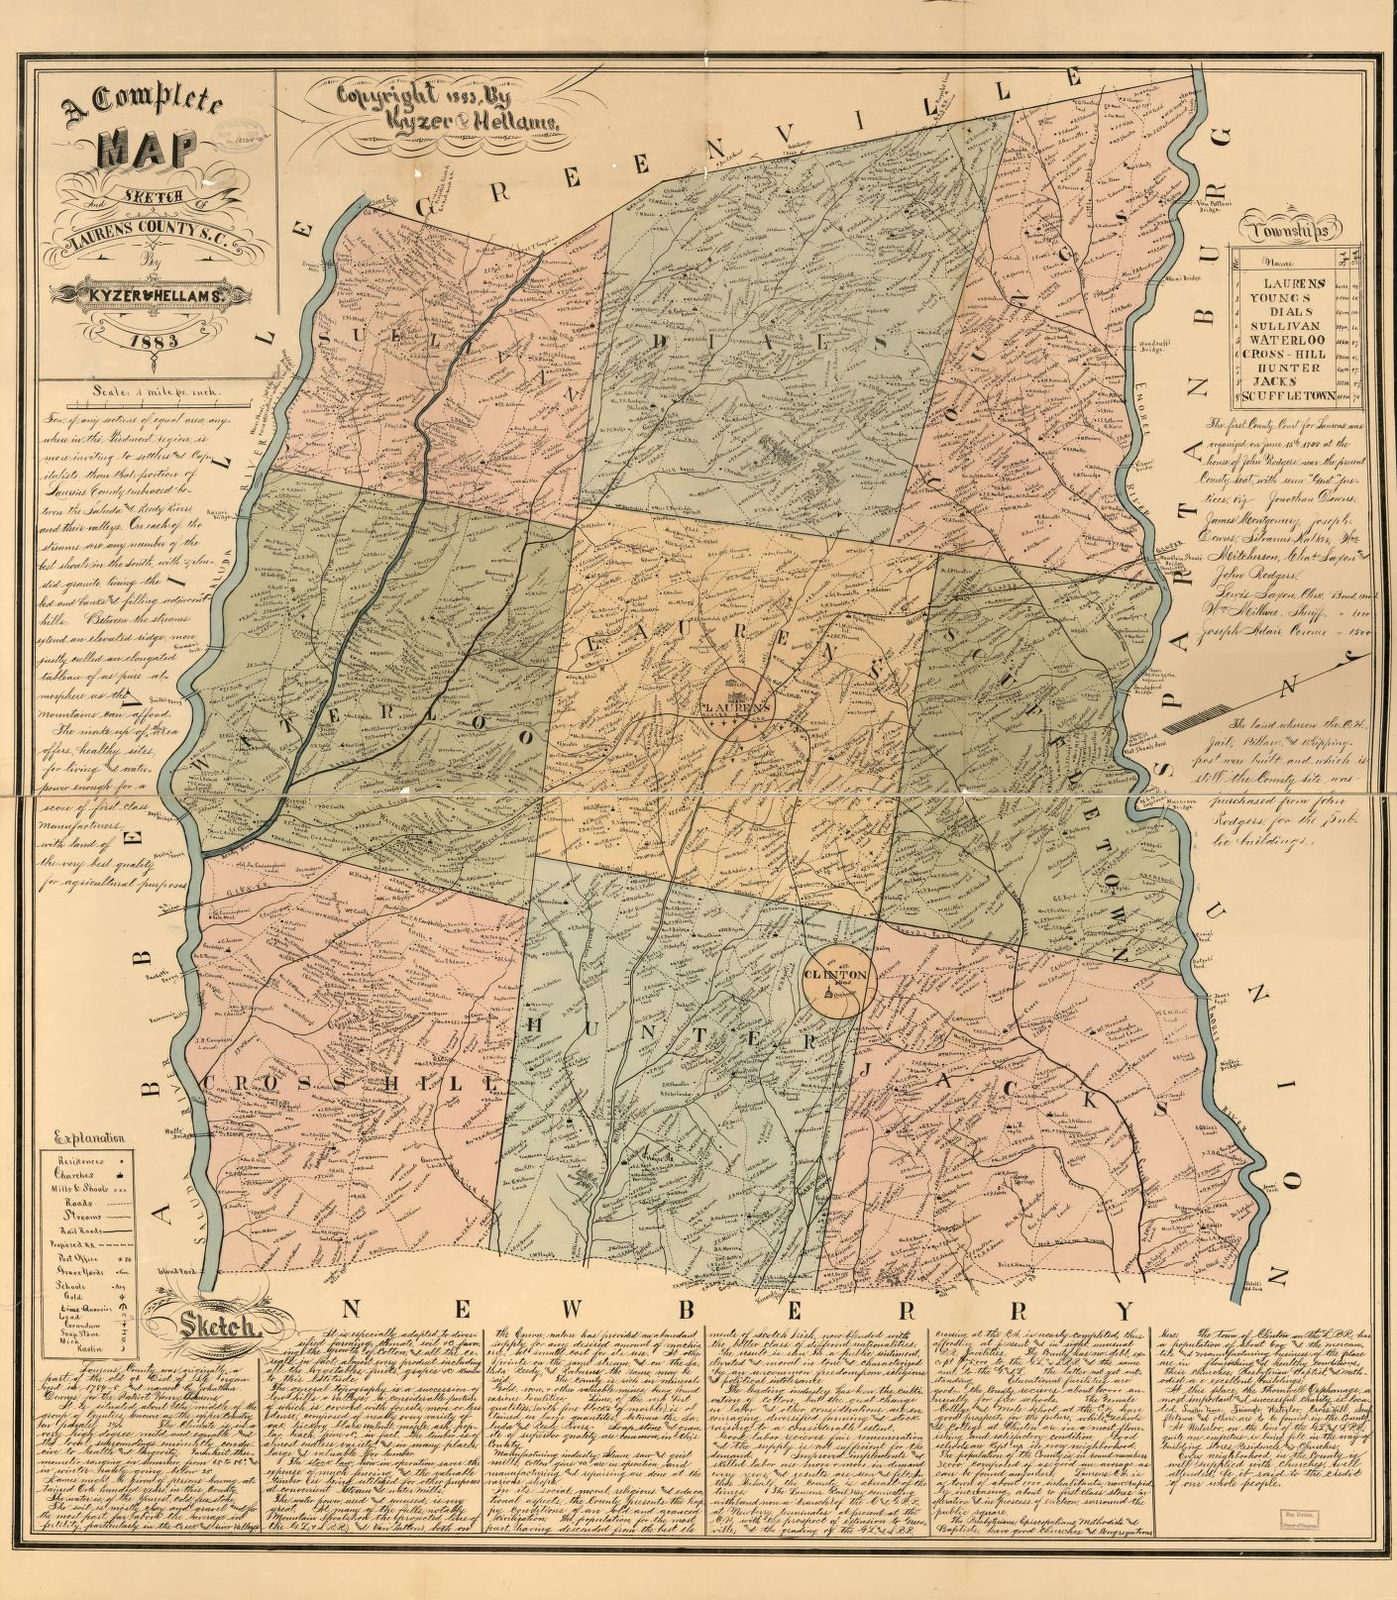 A complete map and sketch of Laurens County, S.C. /